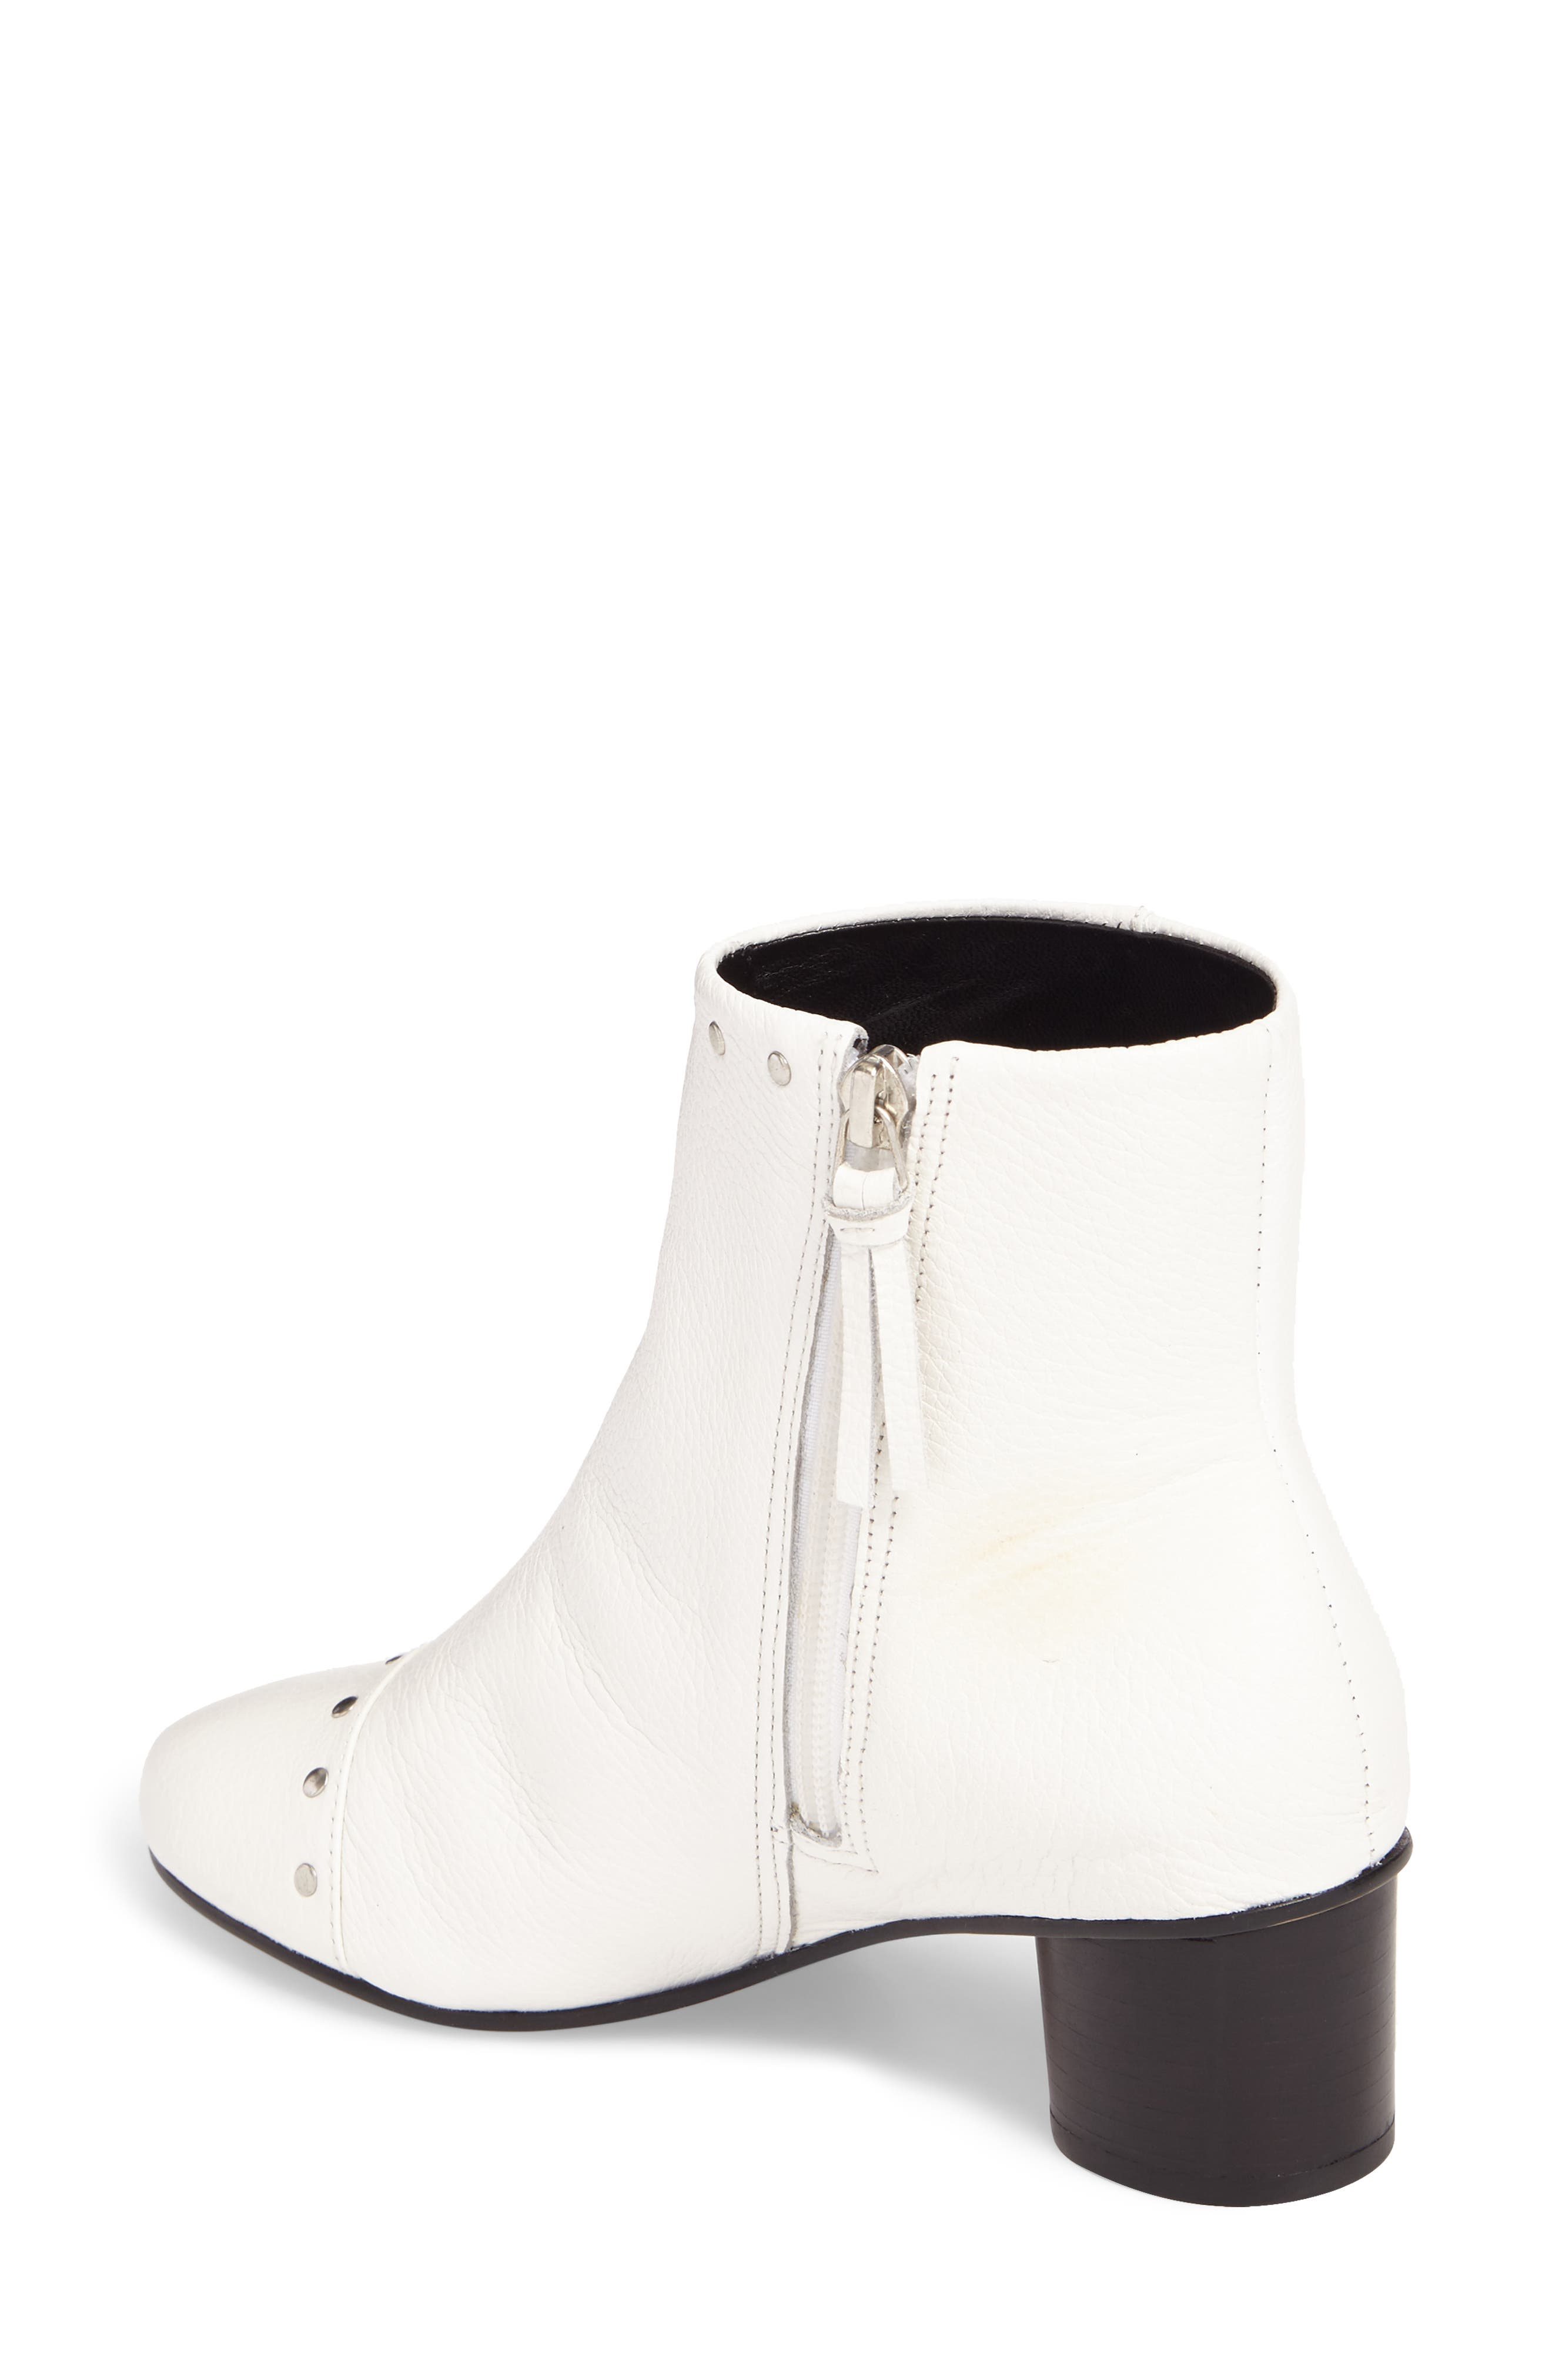 Isley Bootie,                             Alternate thumbnail 5, color,